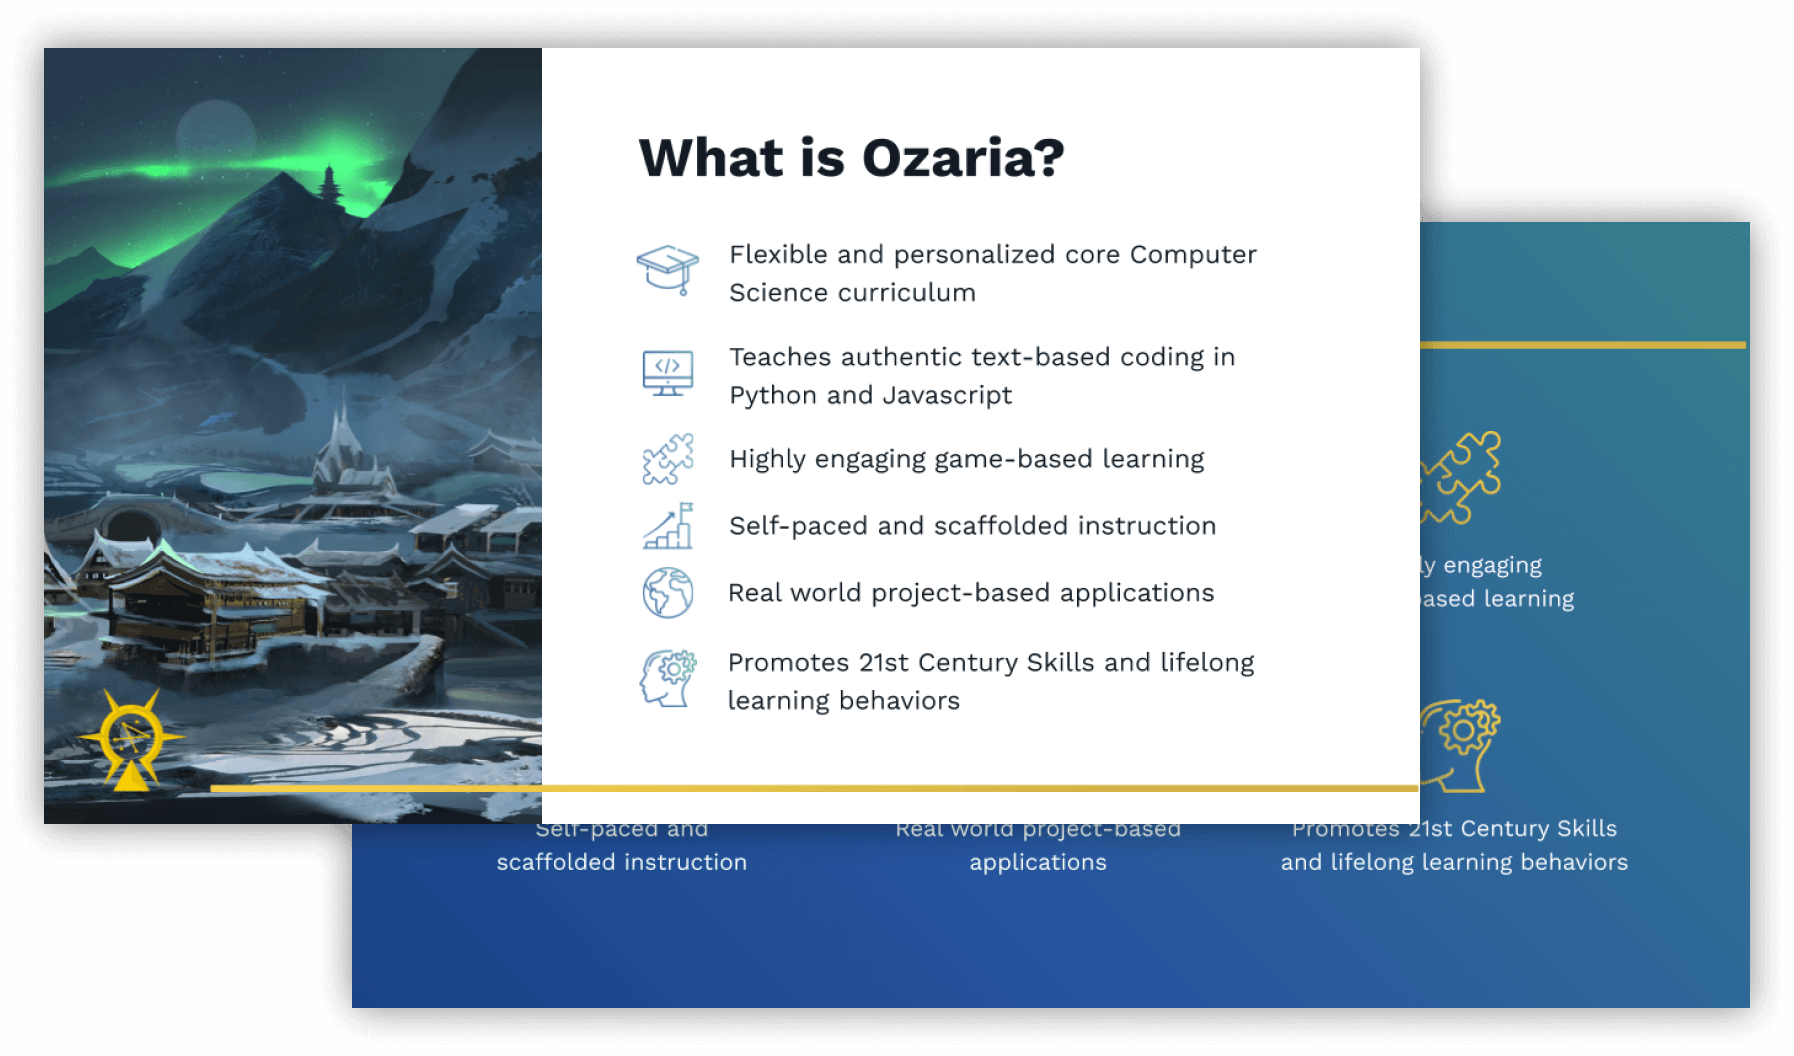 Slide with following text. What is Ozaria? Flexible and personalized core computer science curriculum. Teaches authentic text-based coding in Python and Javascript. Highly engaging game-based learning. Self-paced and scaffolded instruction. Real world project-based applications. Promotes 21st Century Skills and lifelong learning behaviors.